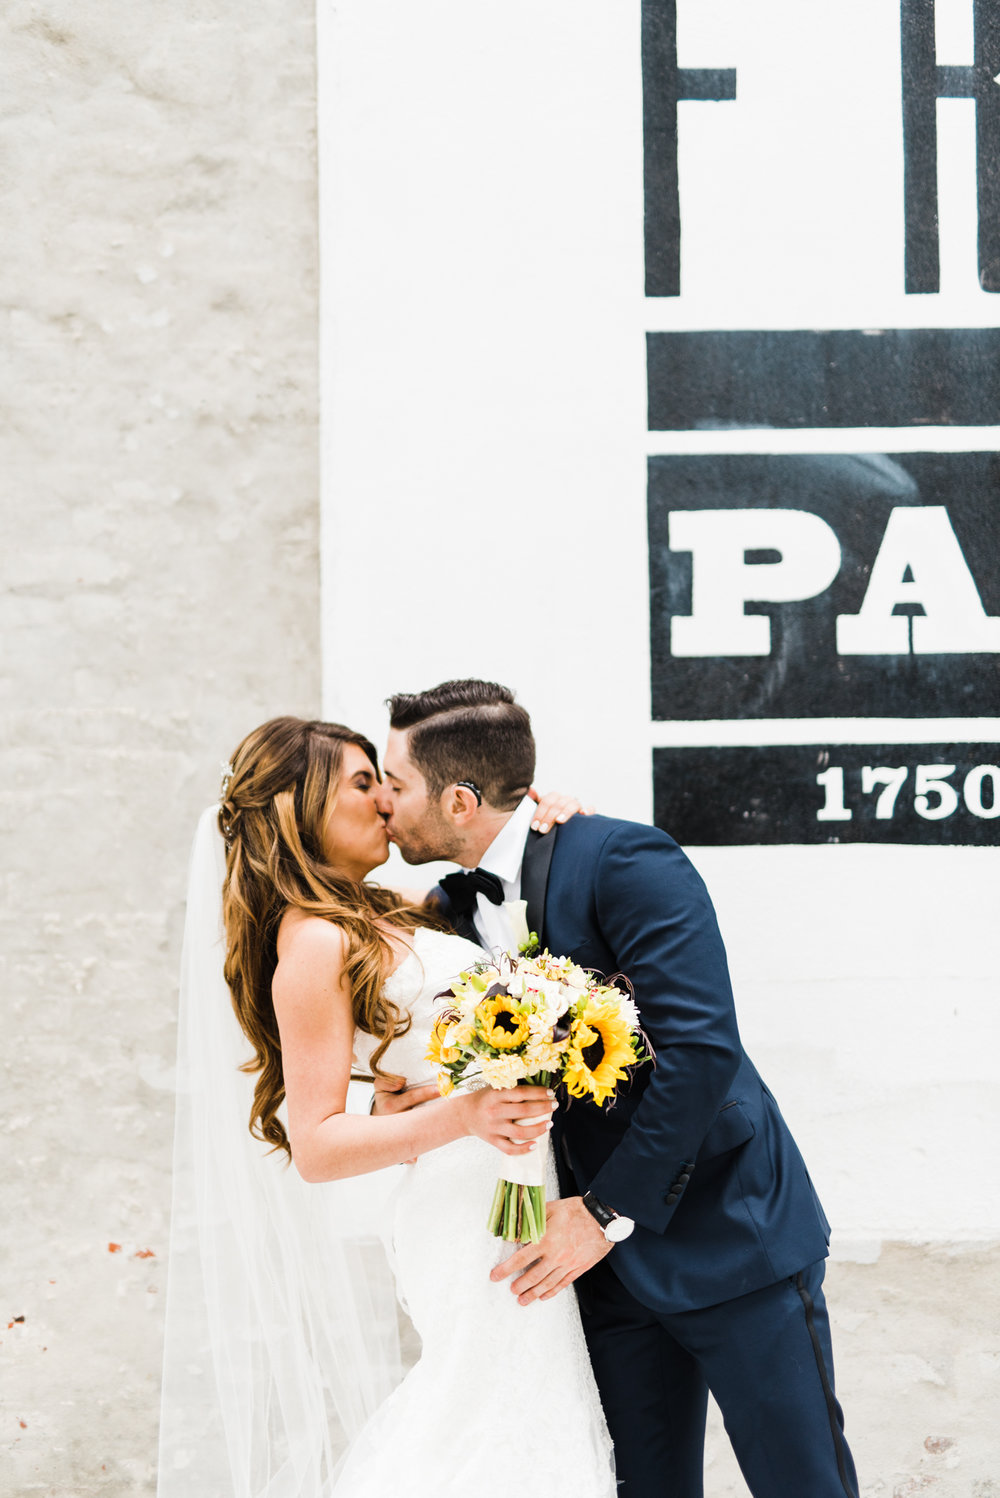 haleyrichterphoto-front-and-palmer-spring-wedding-rodin-museum-loews-hotel-philadelphia-109.jpg